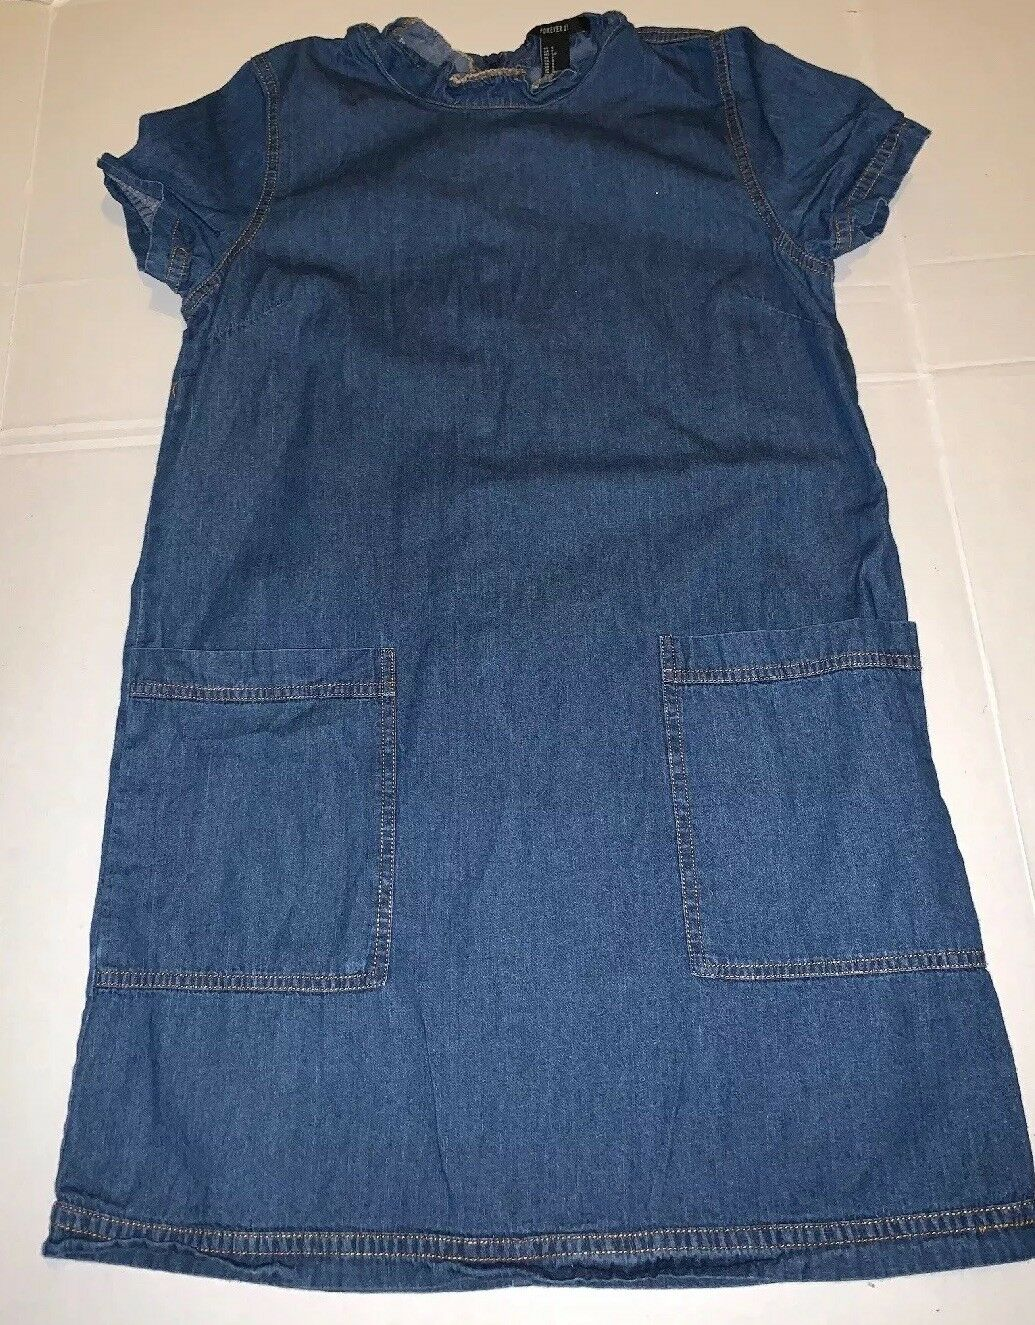 Preowned- Forever21 Dark Wash Chambray Denim Dres… - image 1